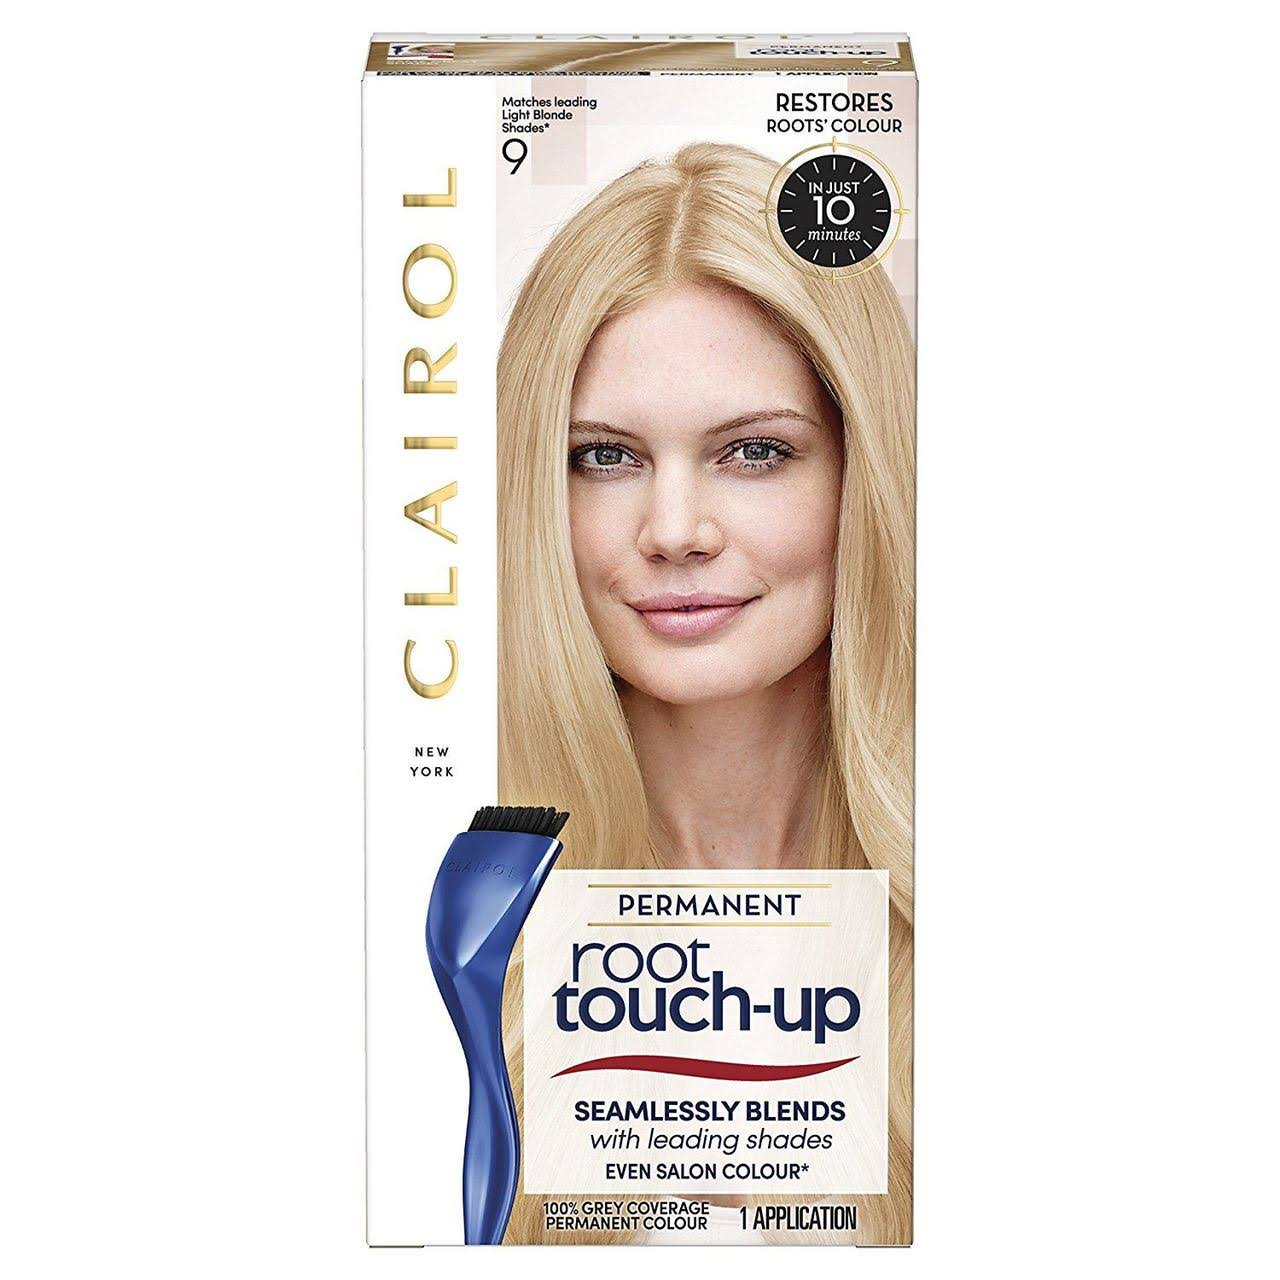 Clairol Root Touch Up Hair Dye - 9 Light Blonde